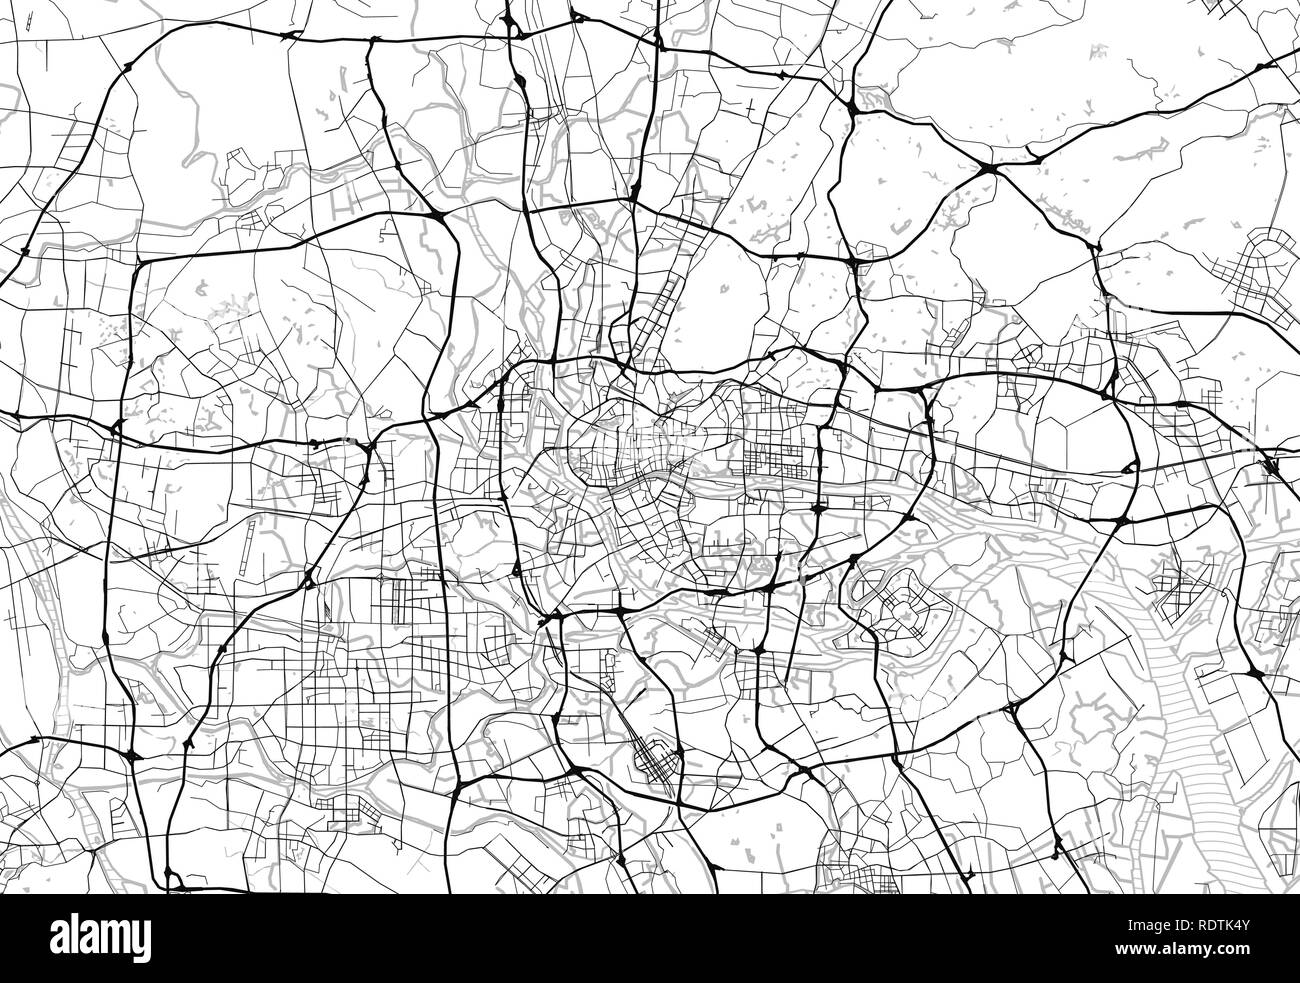 Area map of Guangzhou, China. This artmap of Guangzhou contains geography lines for land mass, water, major and minor roads. - Stock Image